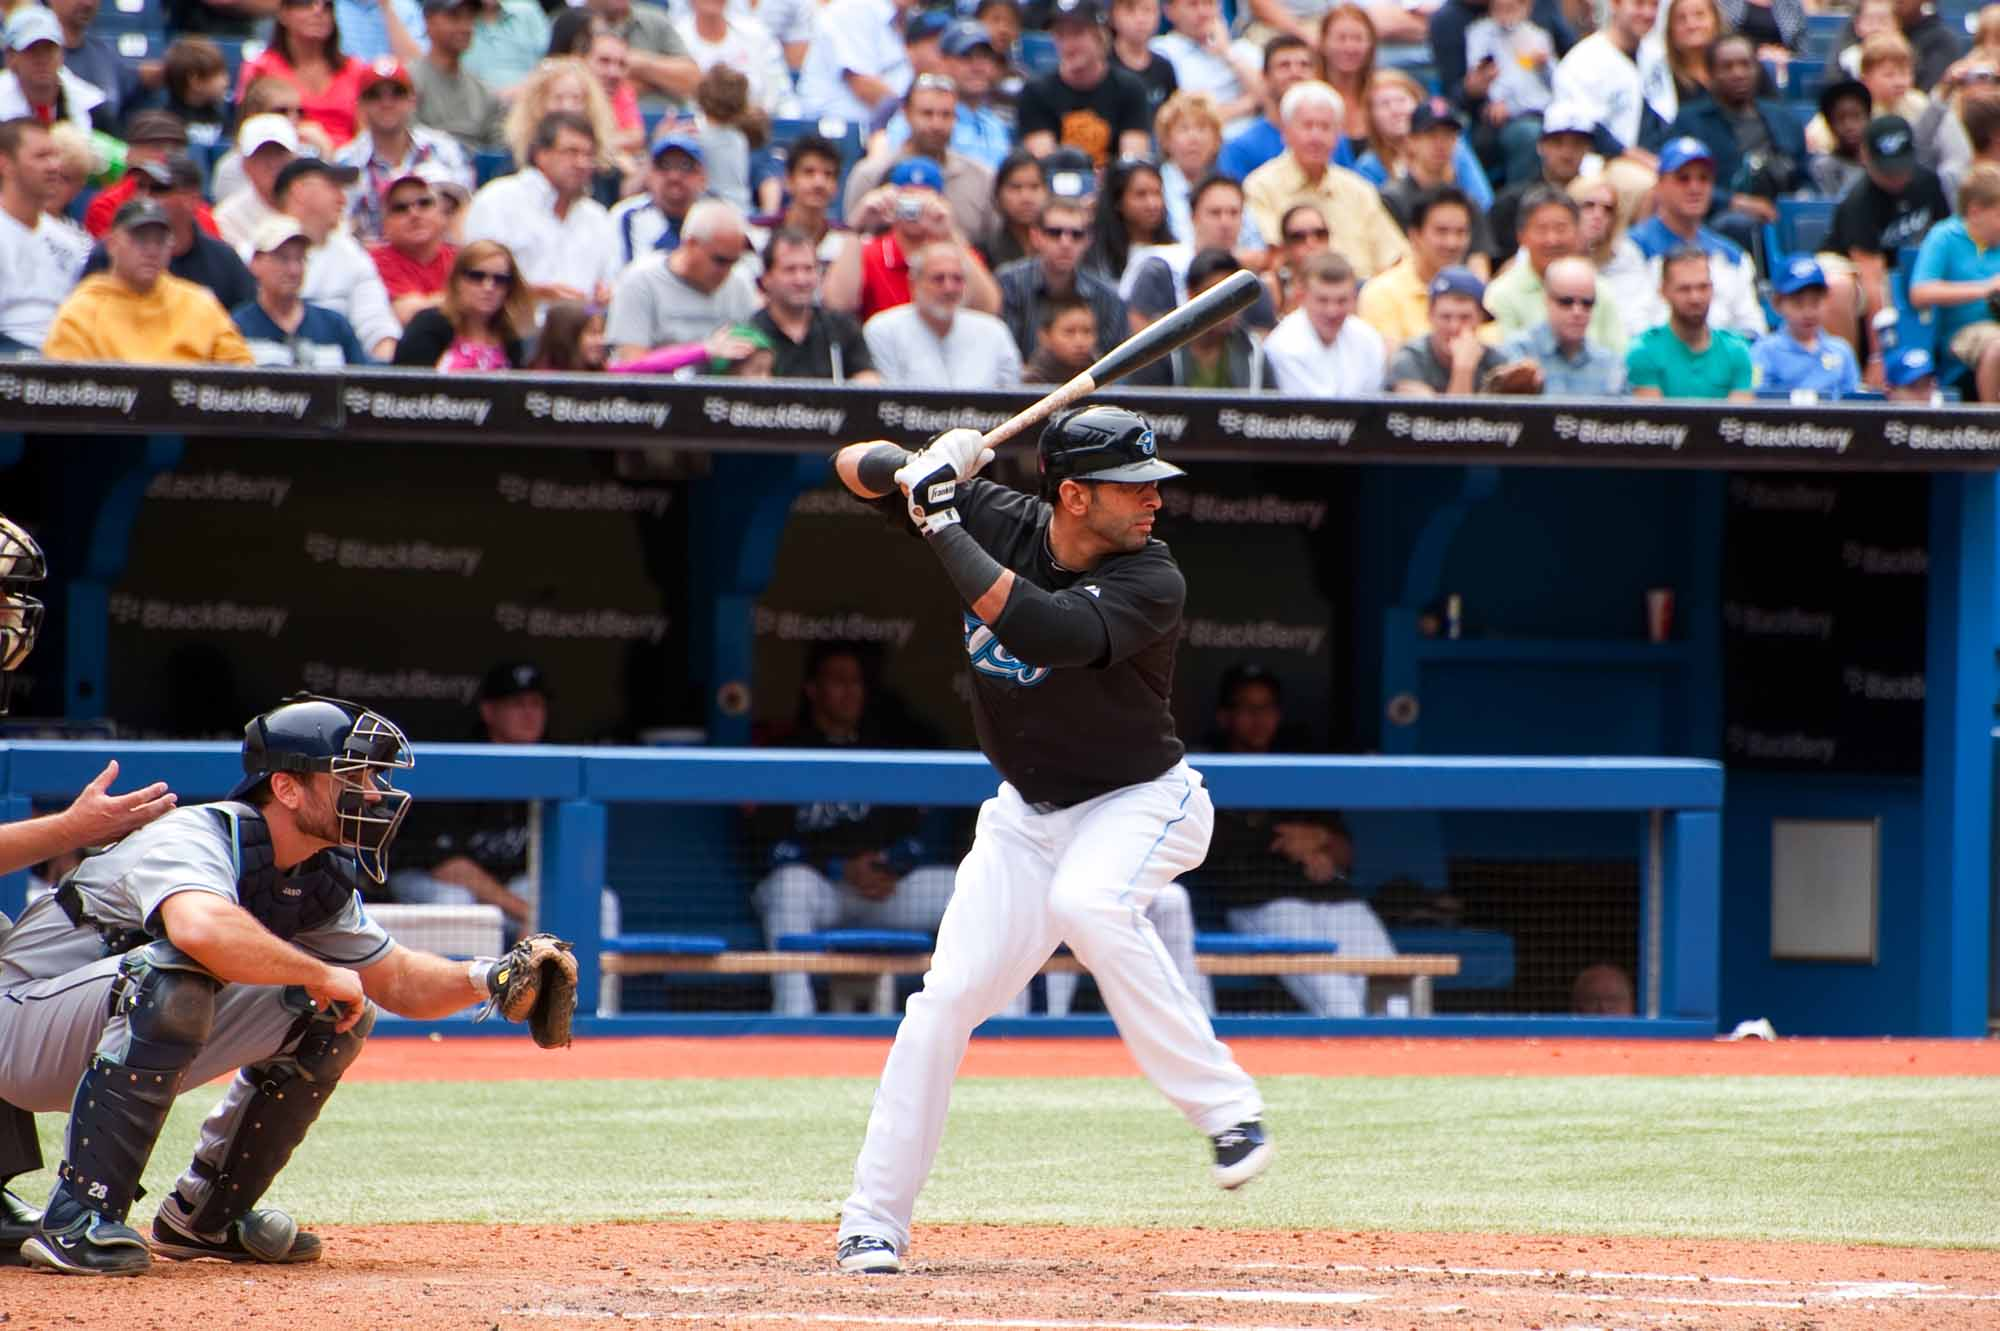 Jose Bautista of the Toronto Blue Jays